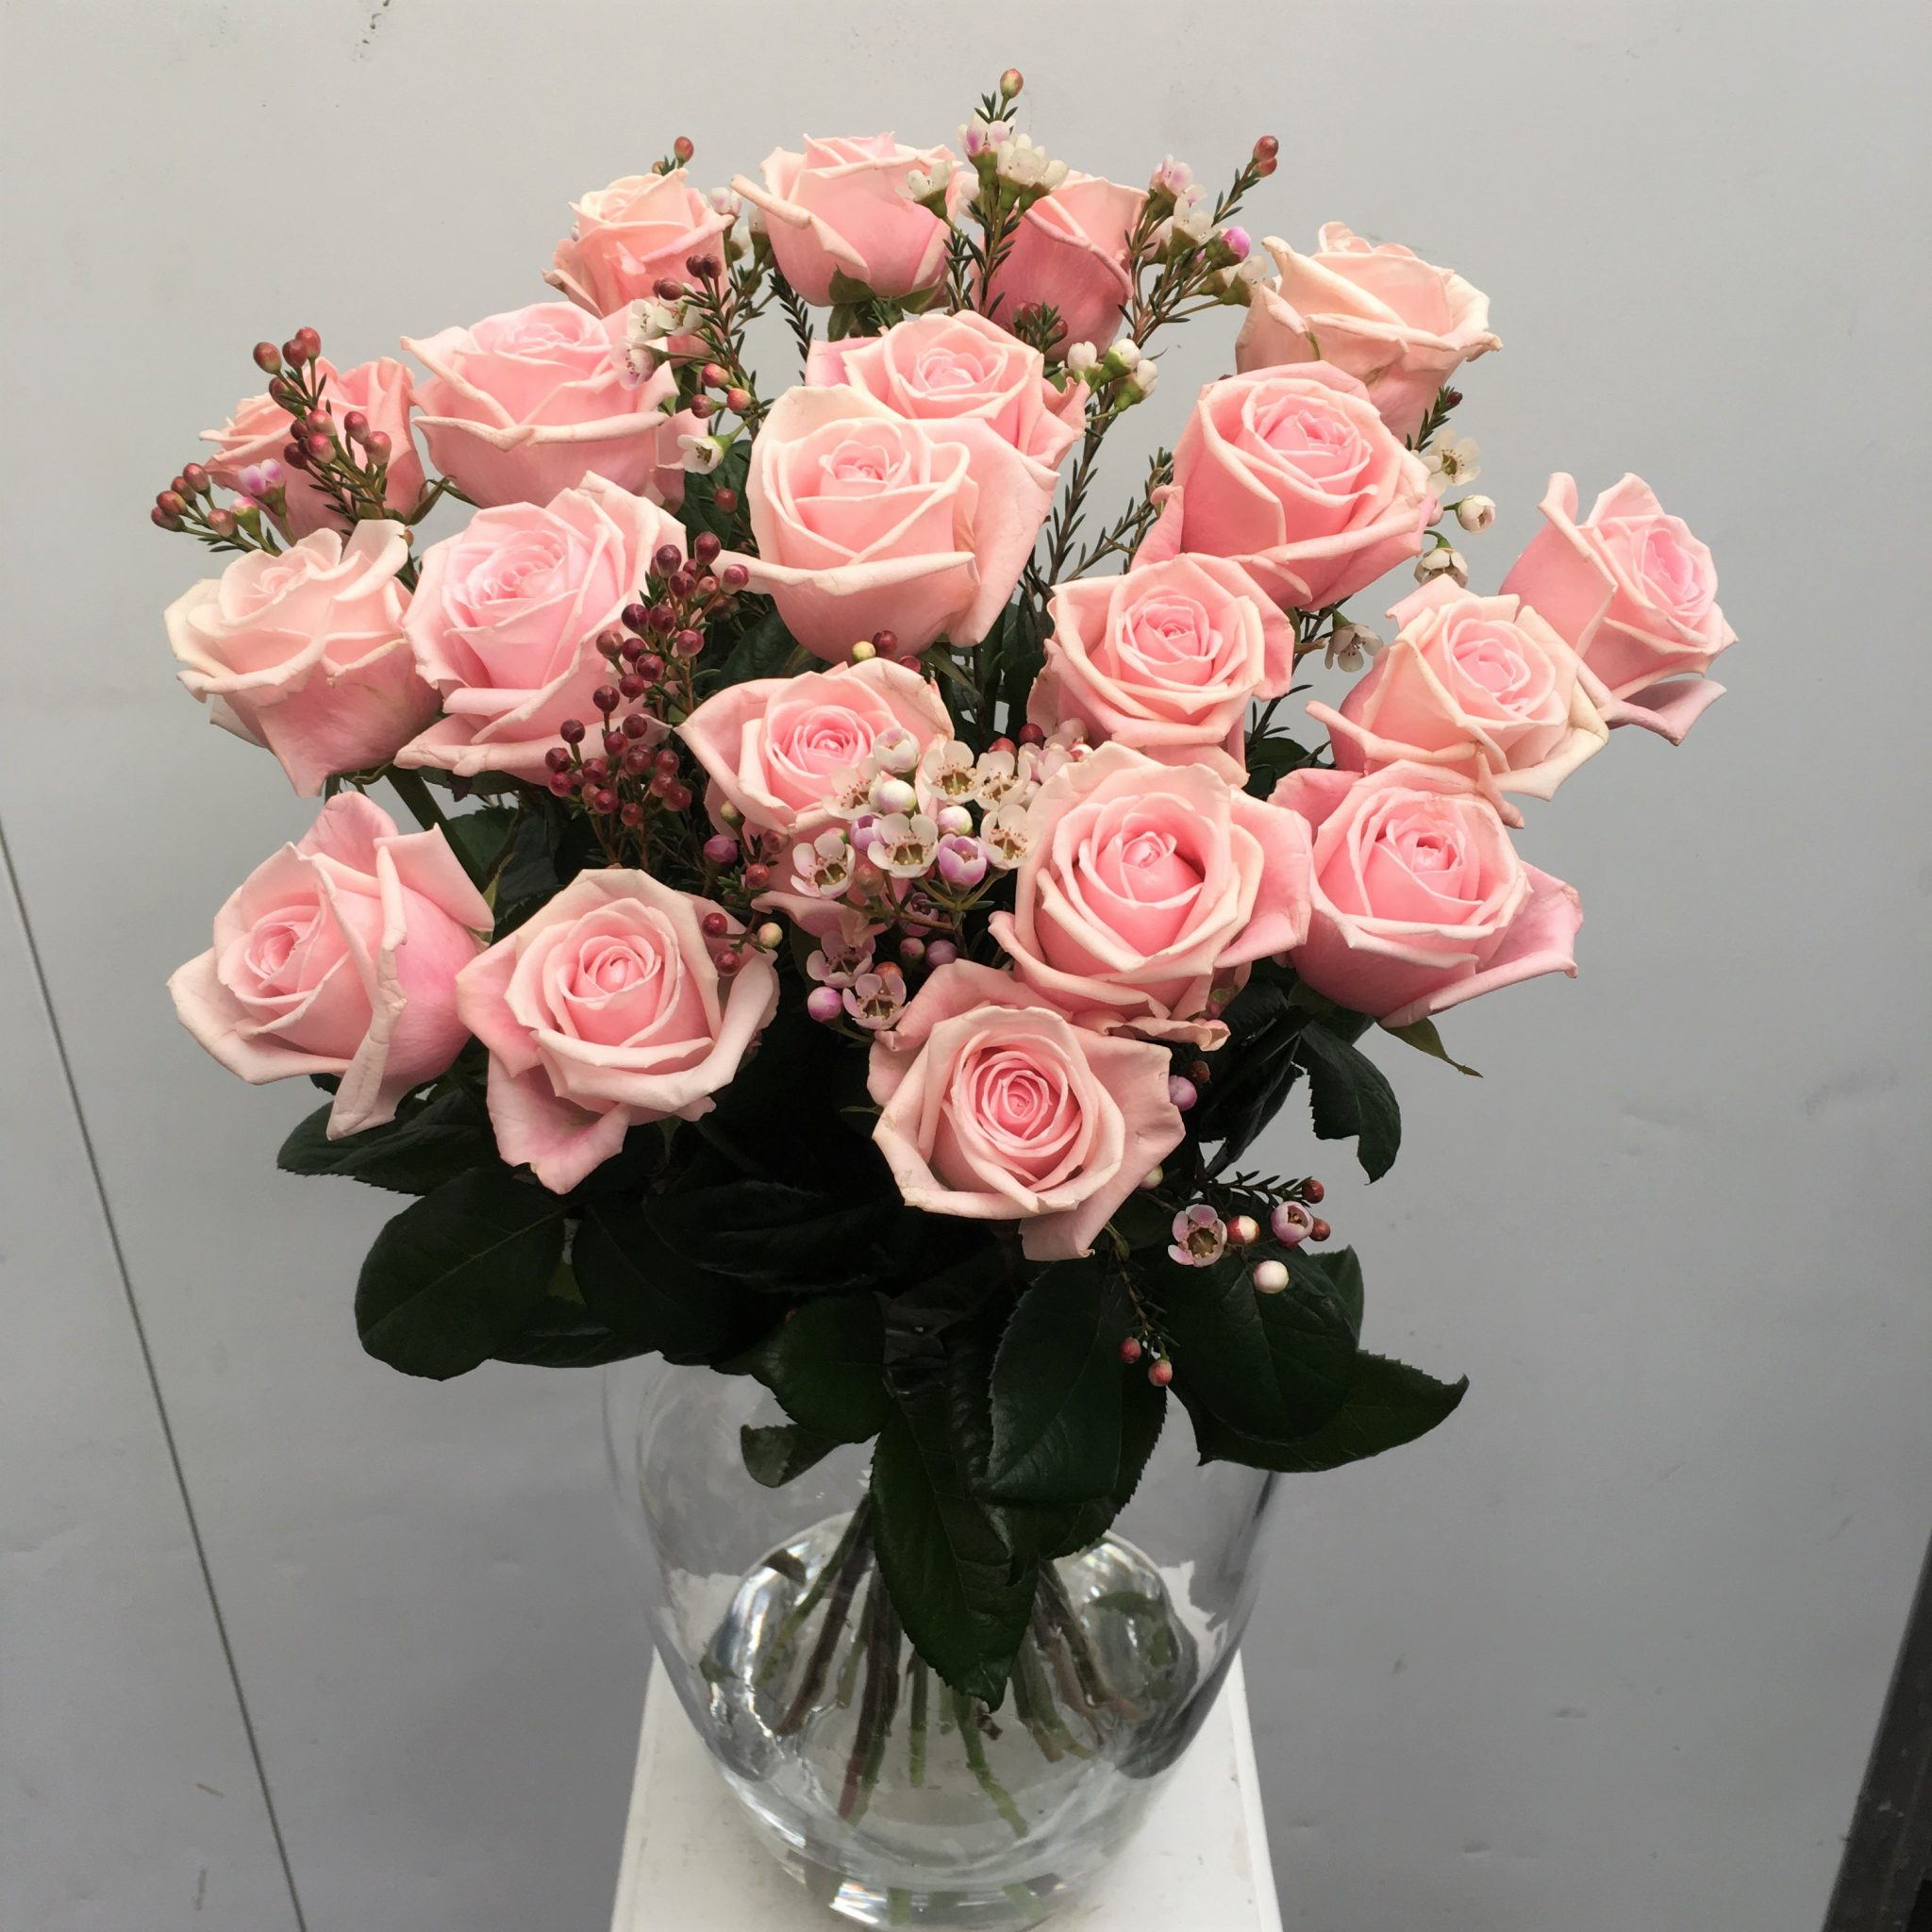 Pink Roses with Wax Flower & 20 Long stem Pink Roses in a vase